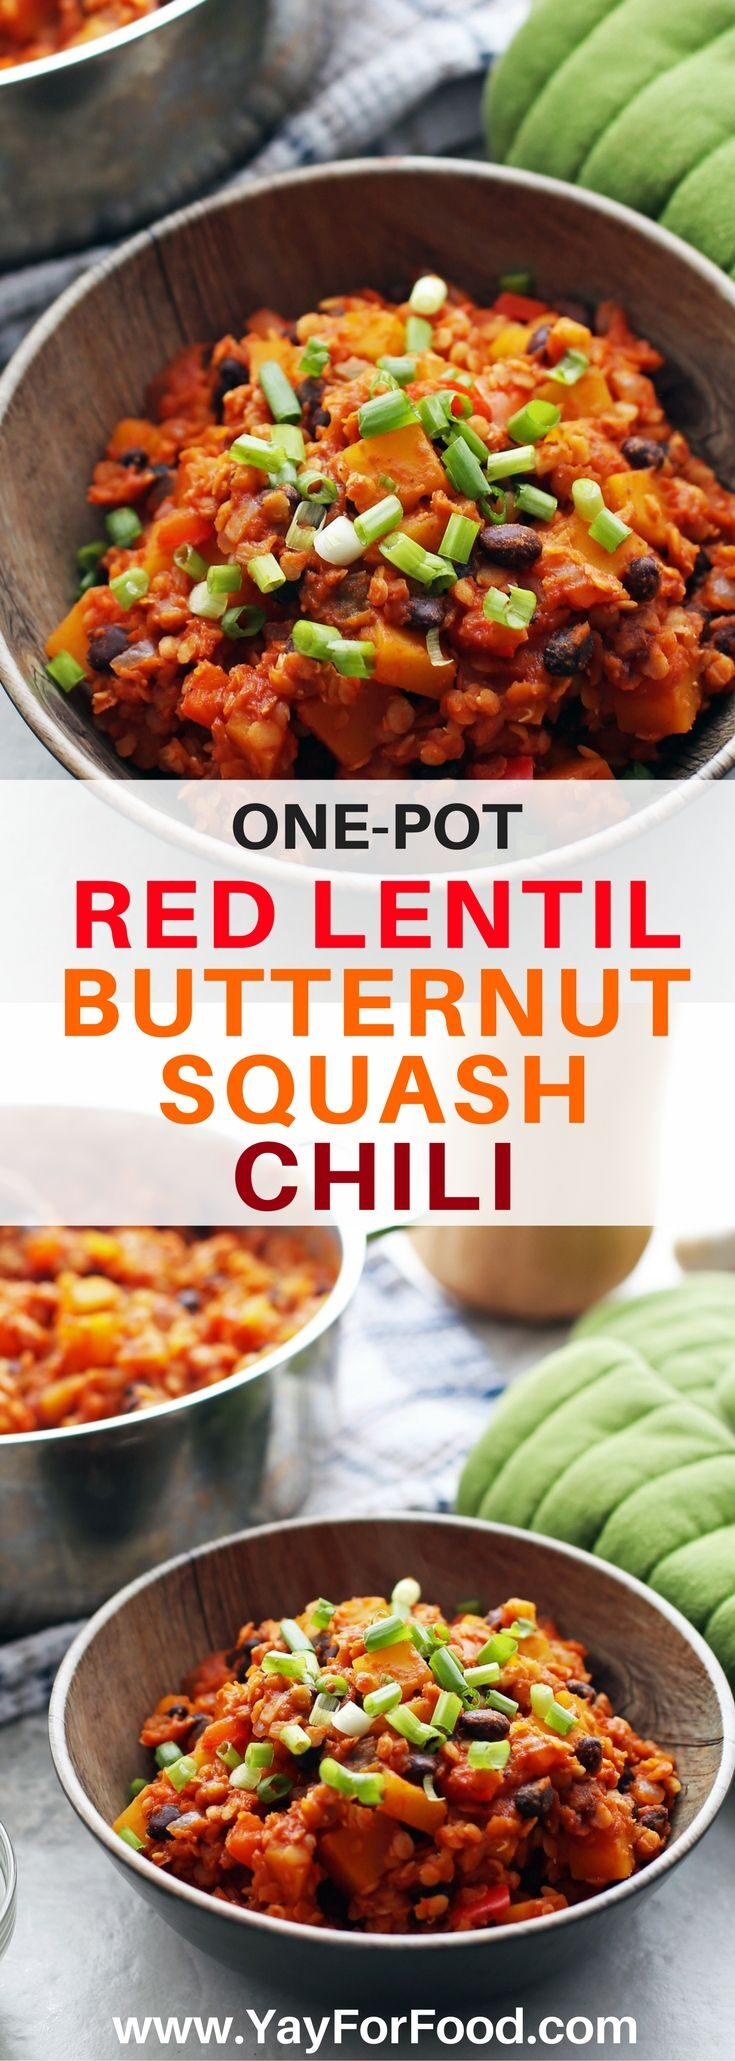 Flavourful, hearty, and ready in one hour! Try this delicious and healthy one-pot vegan chili featuring red lentils and butternut squash. Perfect for chilly days!